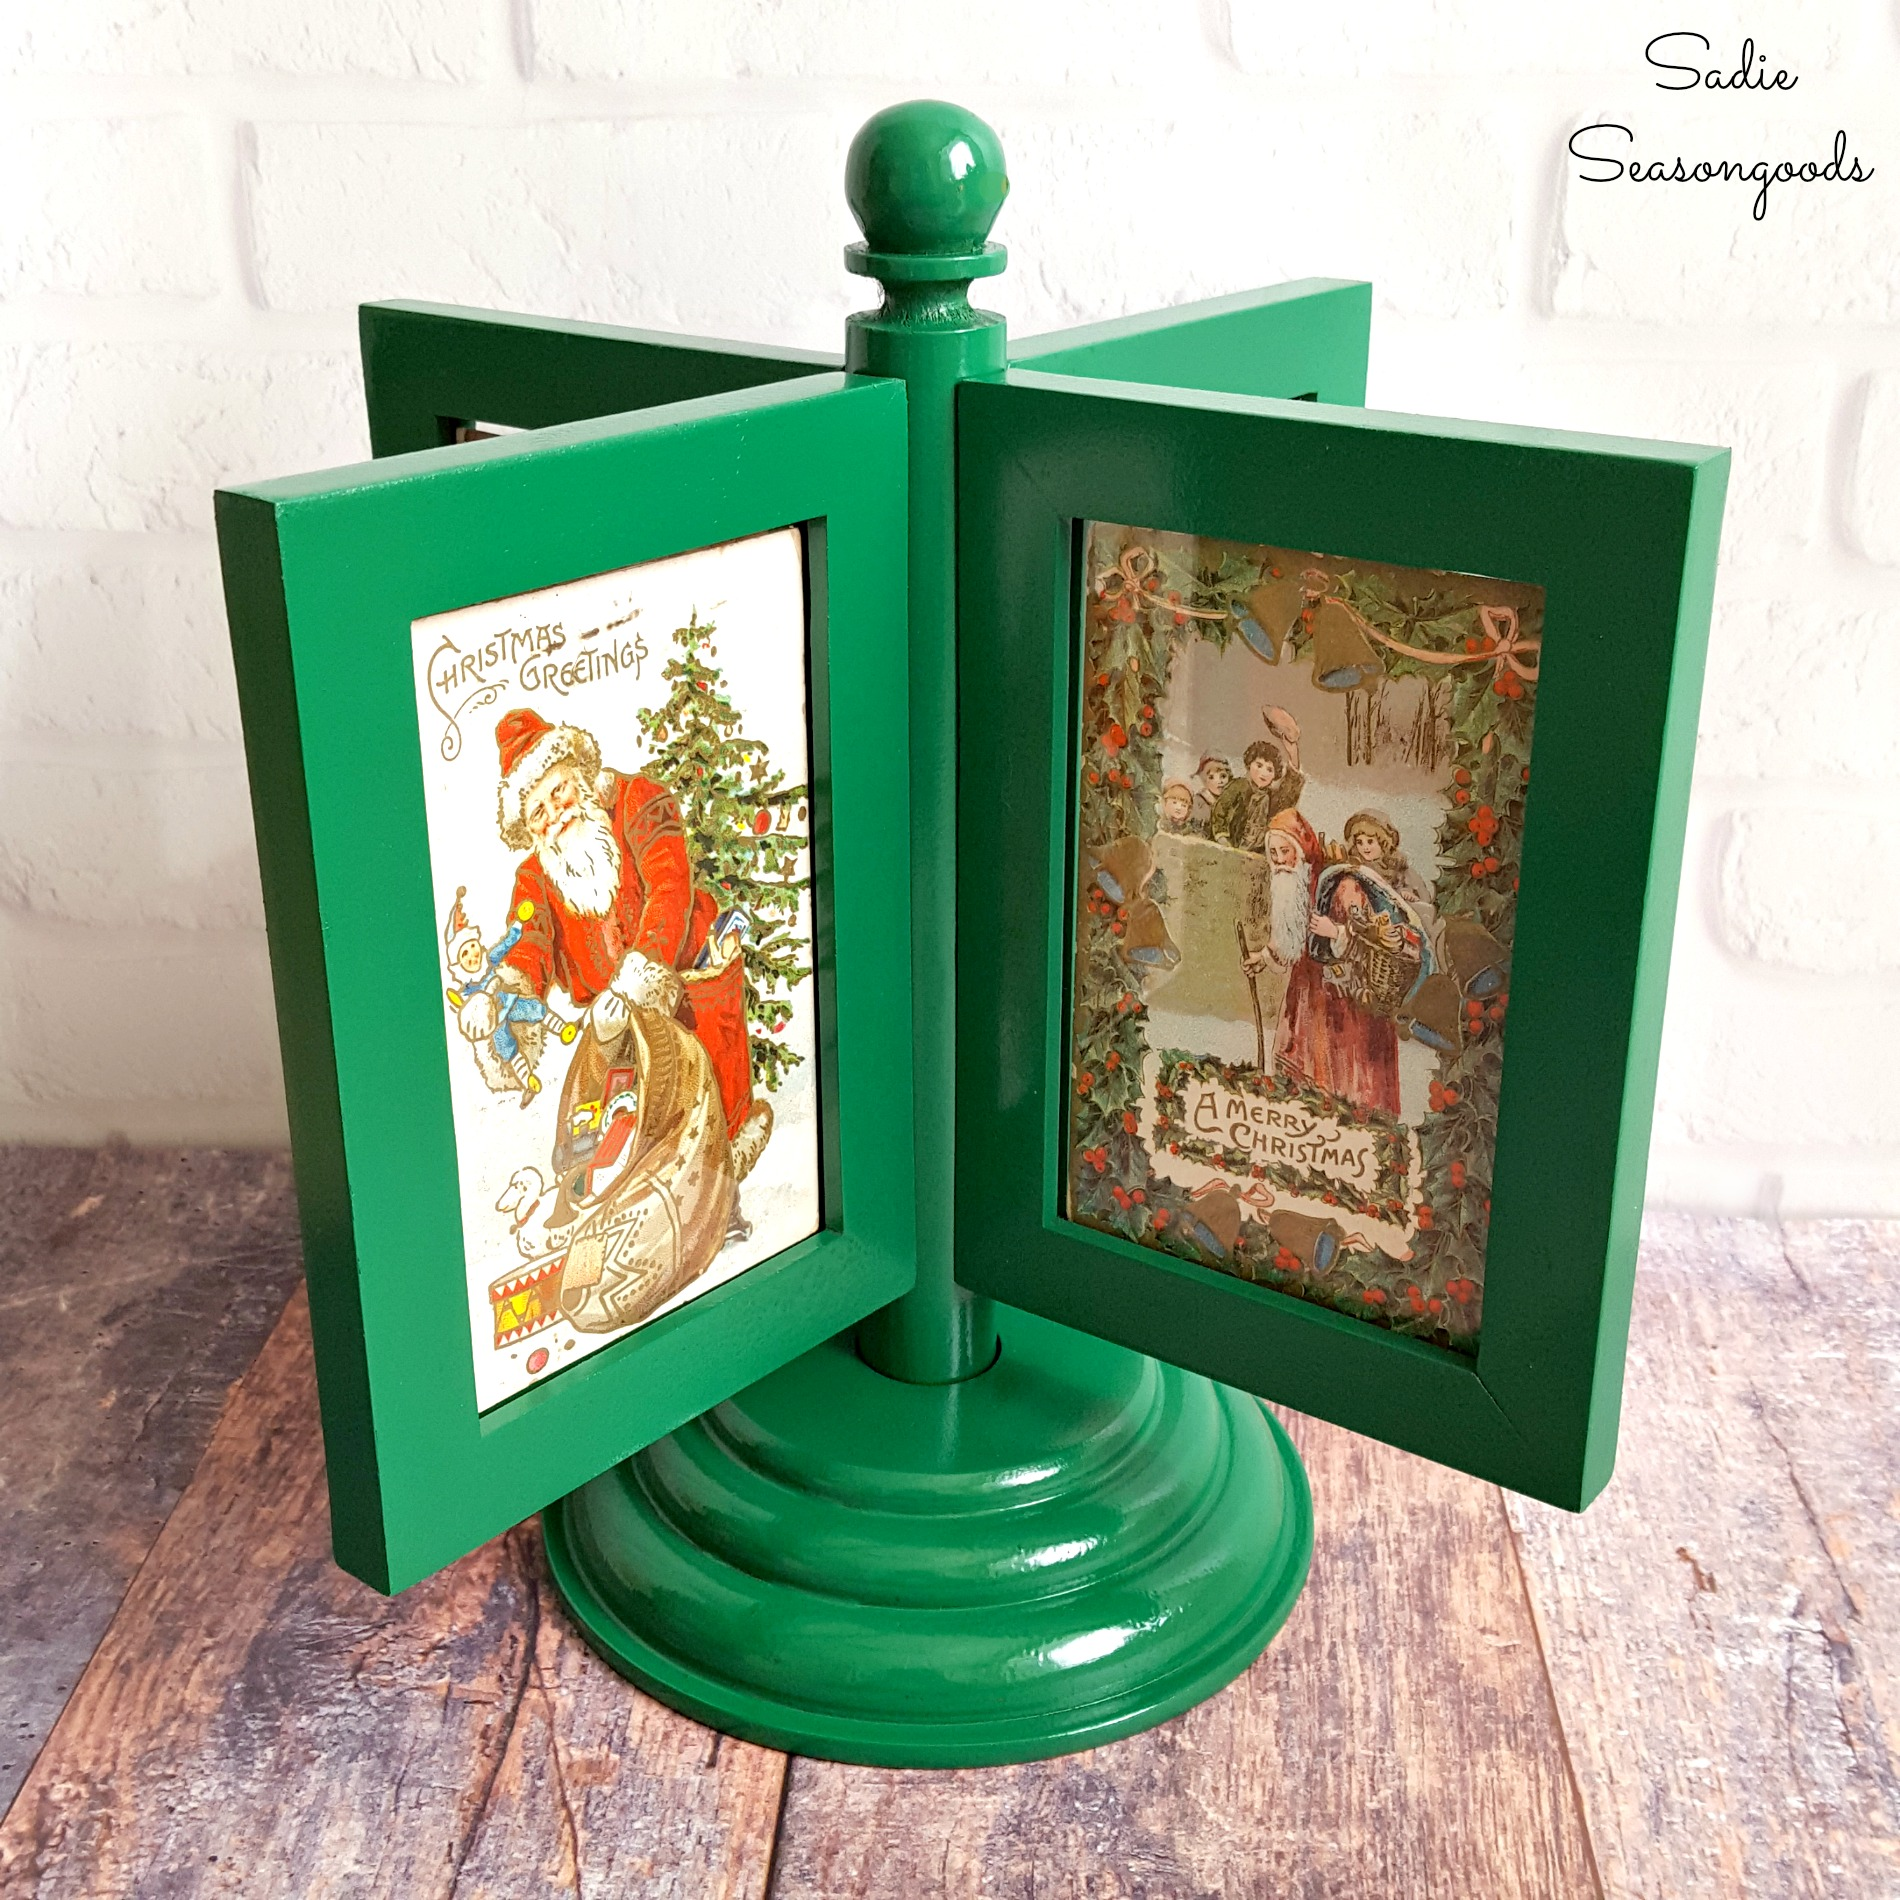 Vintage Christmas card picture carousel, by Sadie Seasongoods, featured on Funky Junk Interiors